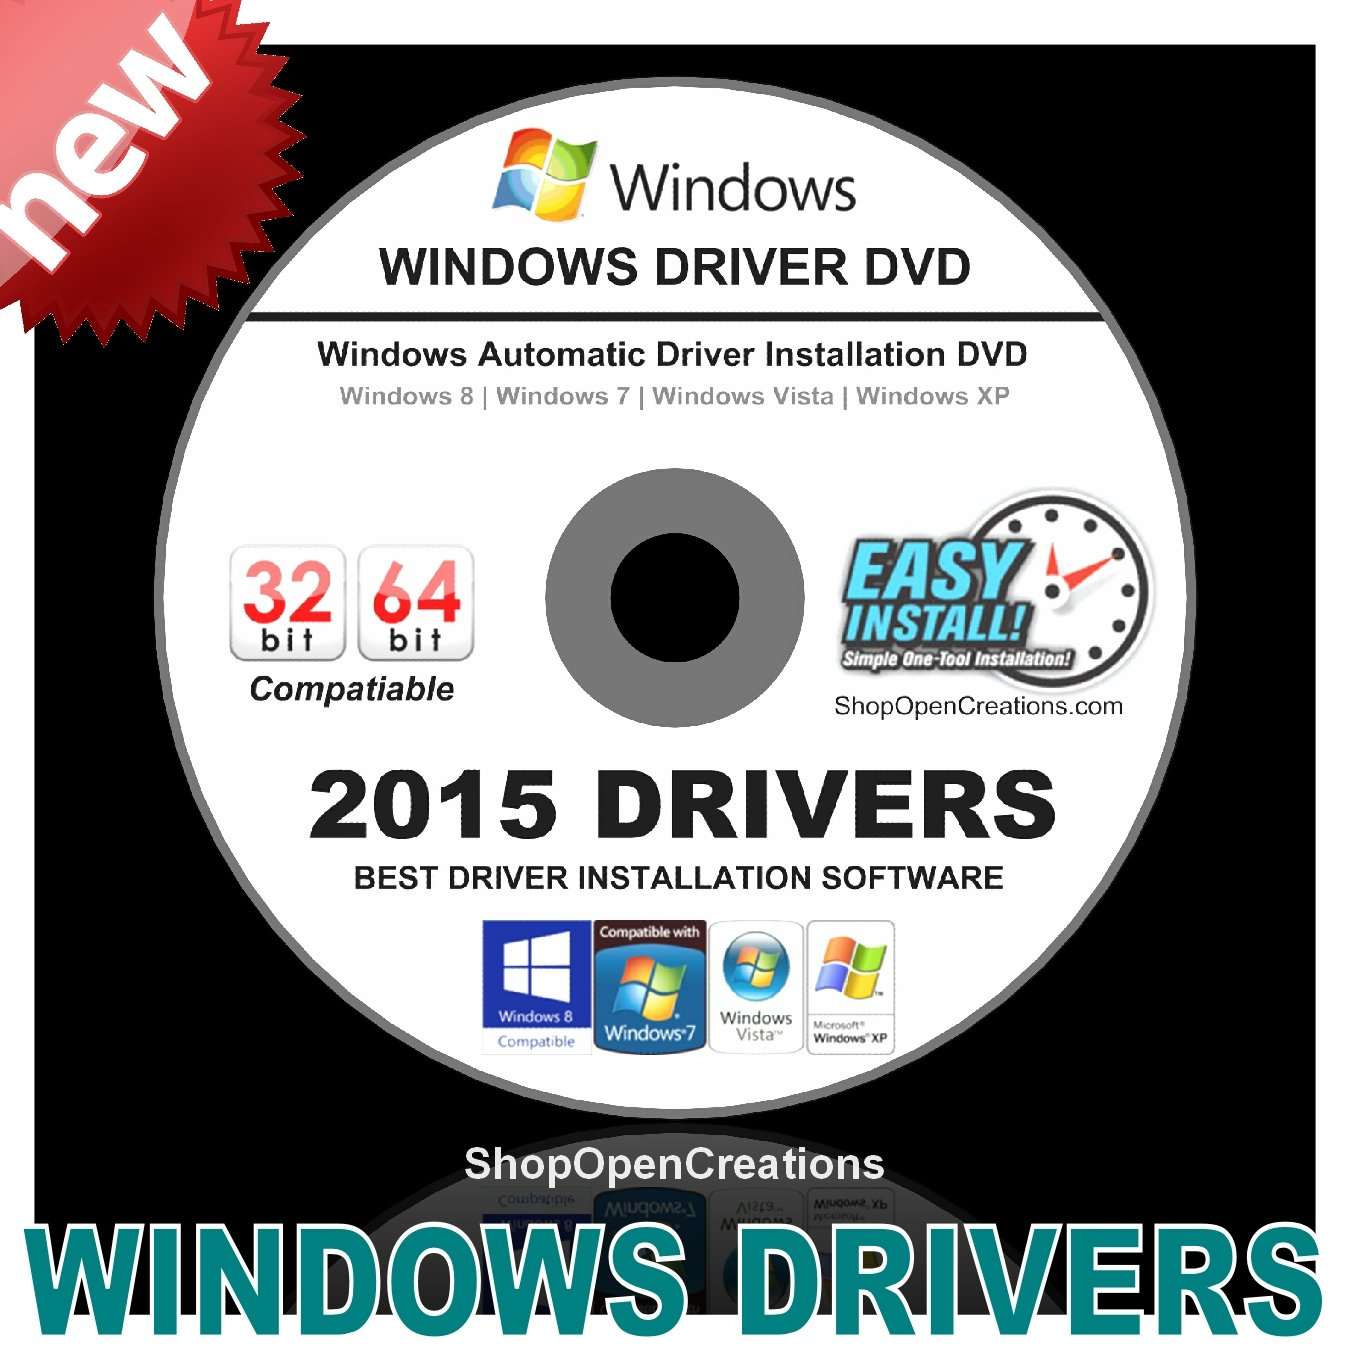 2015 Universal Windows Drivers DVD For Microsoft Windows XP, Vista, 7, 8 and 8.1 - Easy Automatic Install - Install Any Missing Driver or Update Existing ...